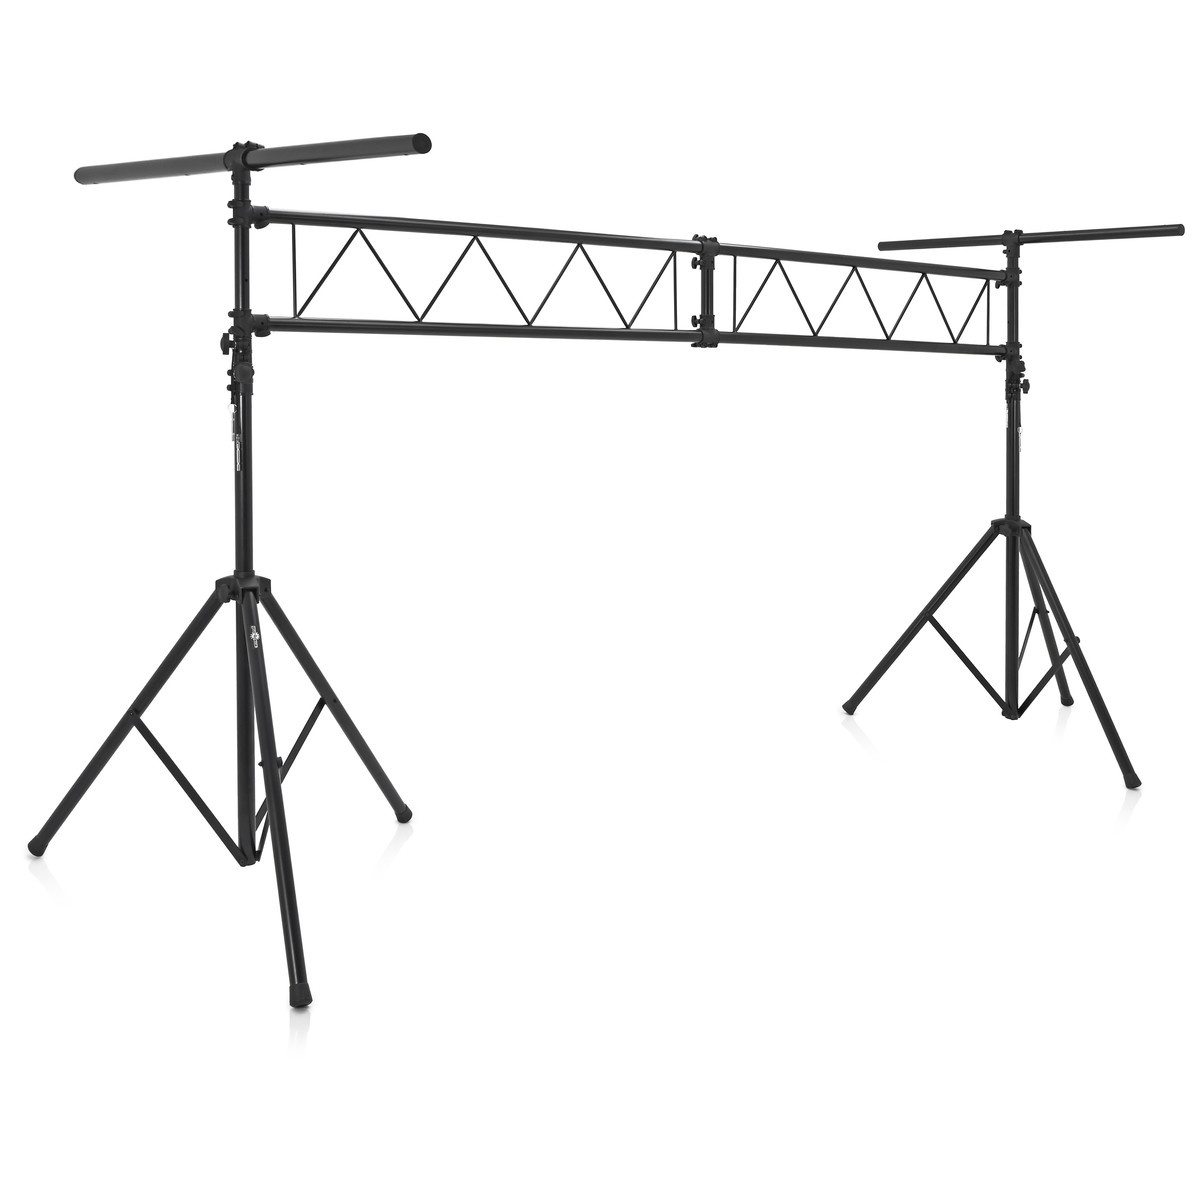 Image of Adjustable Lighting Bridge by Gear4music